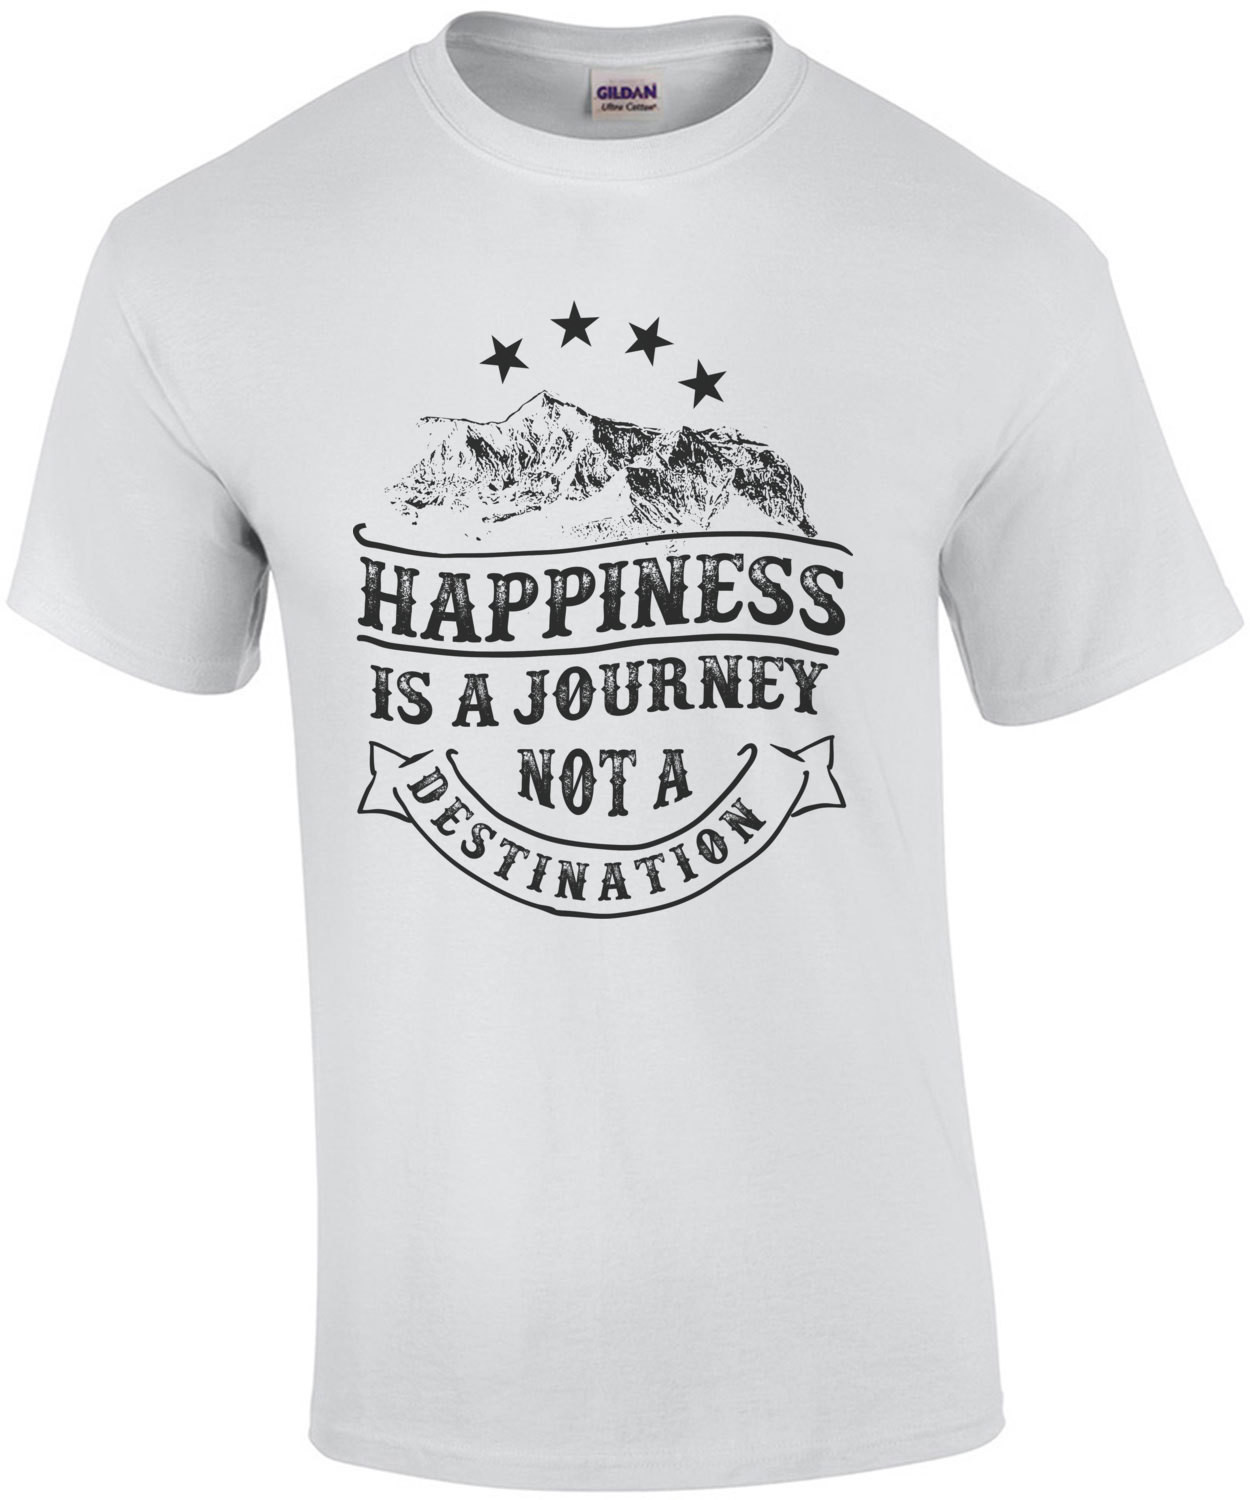 Happiness Is A Journey Not A Destination T-Shirt